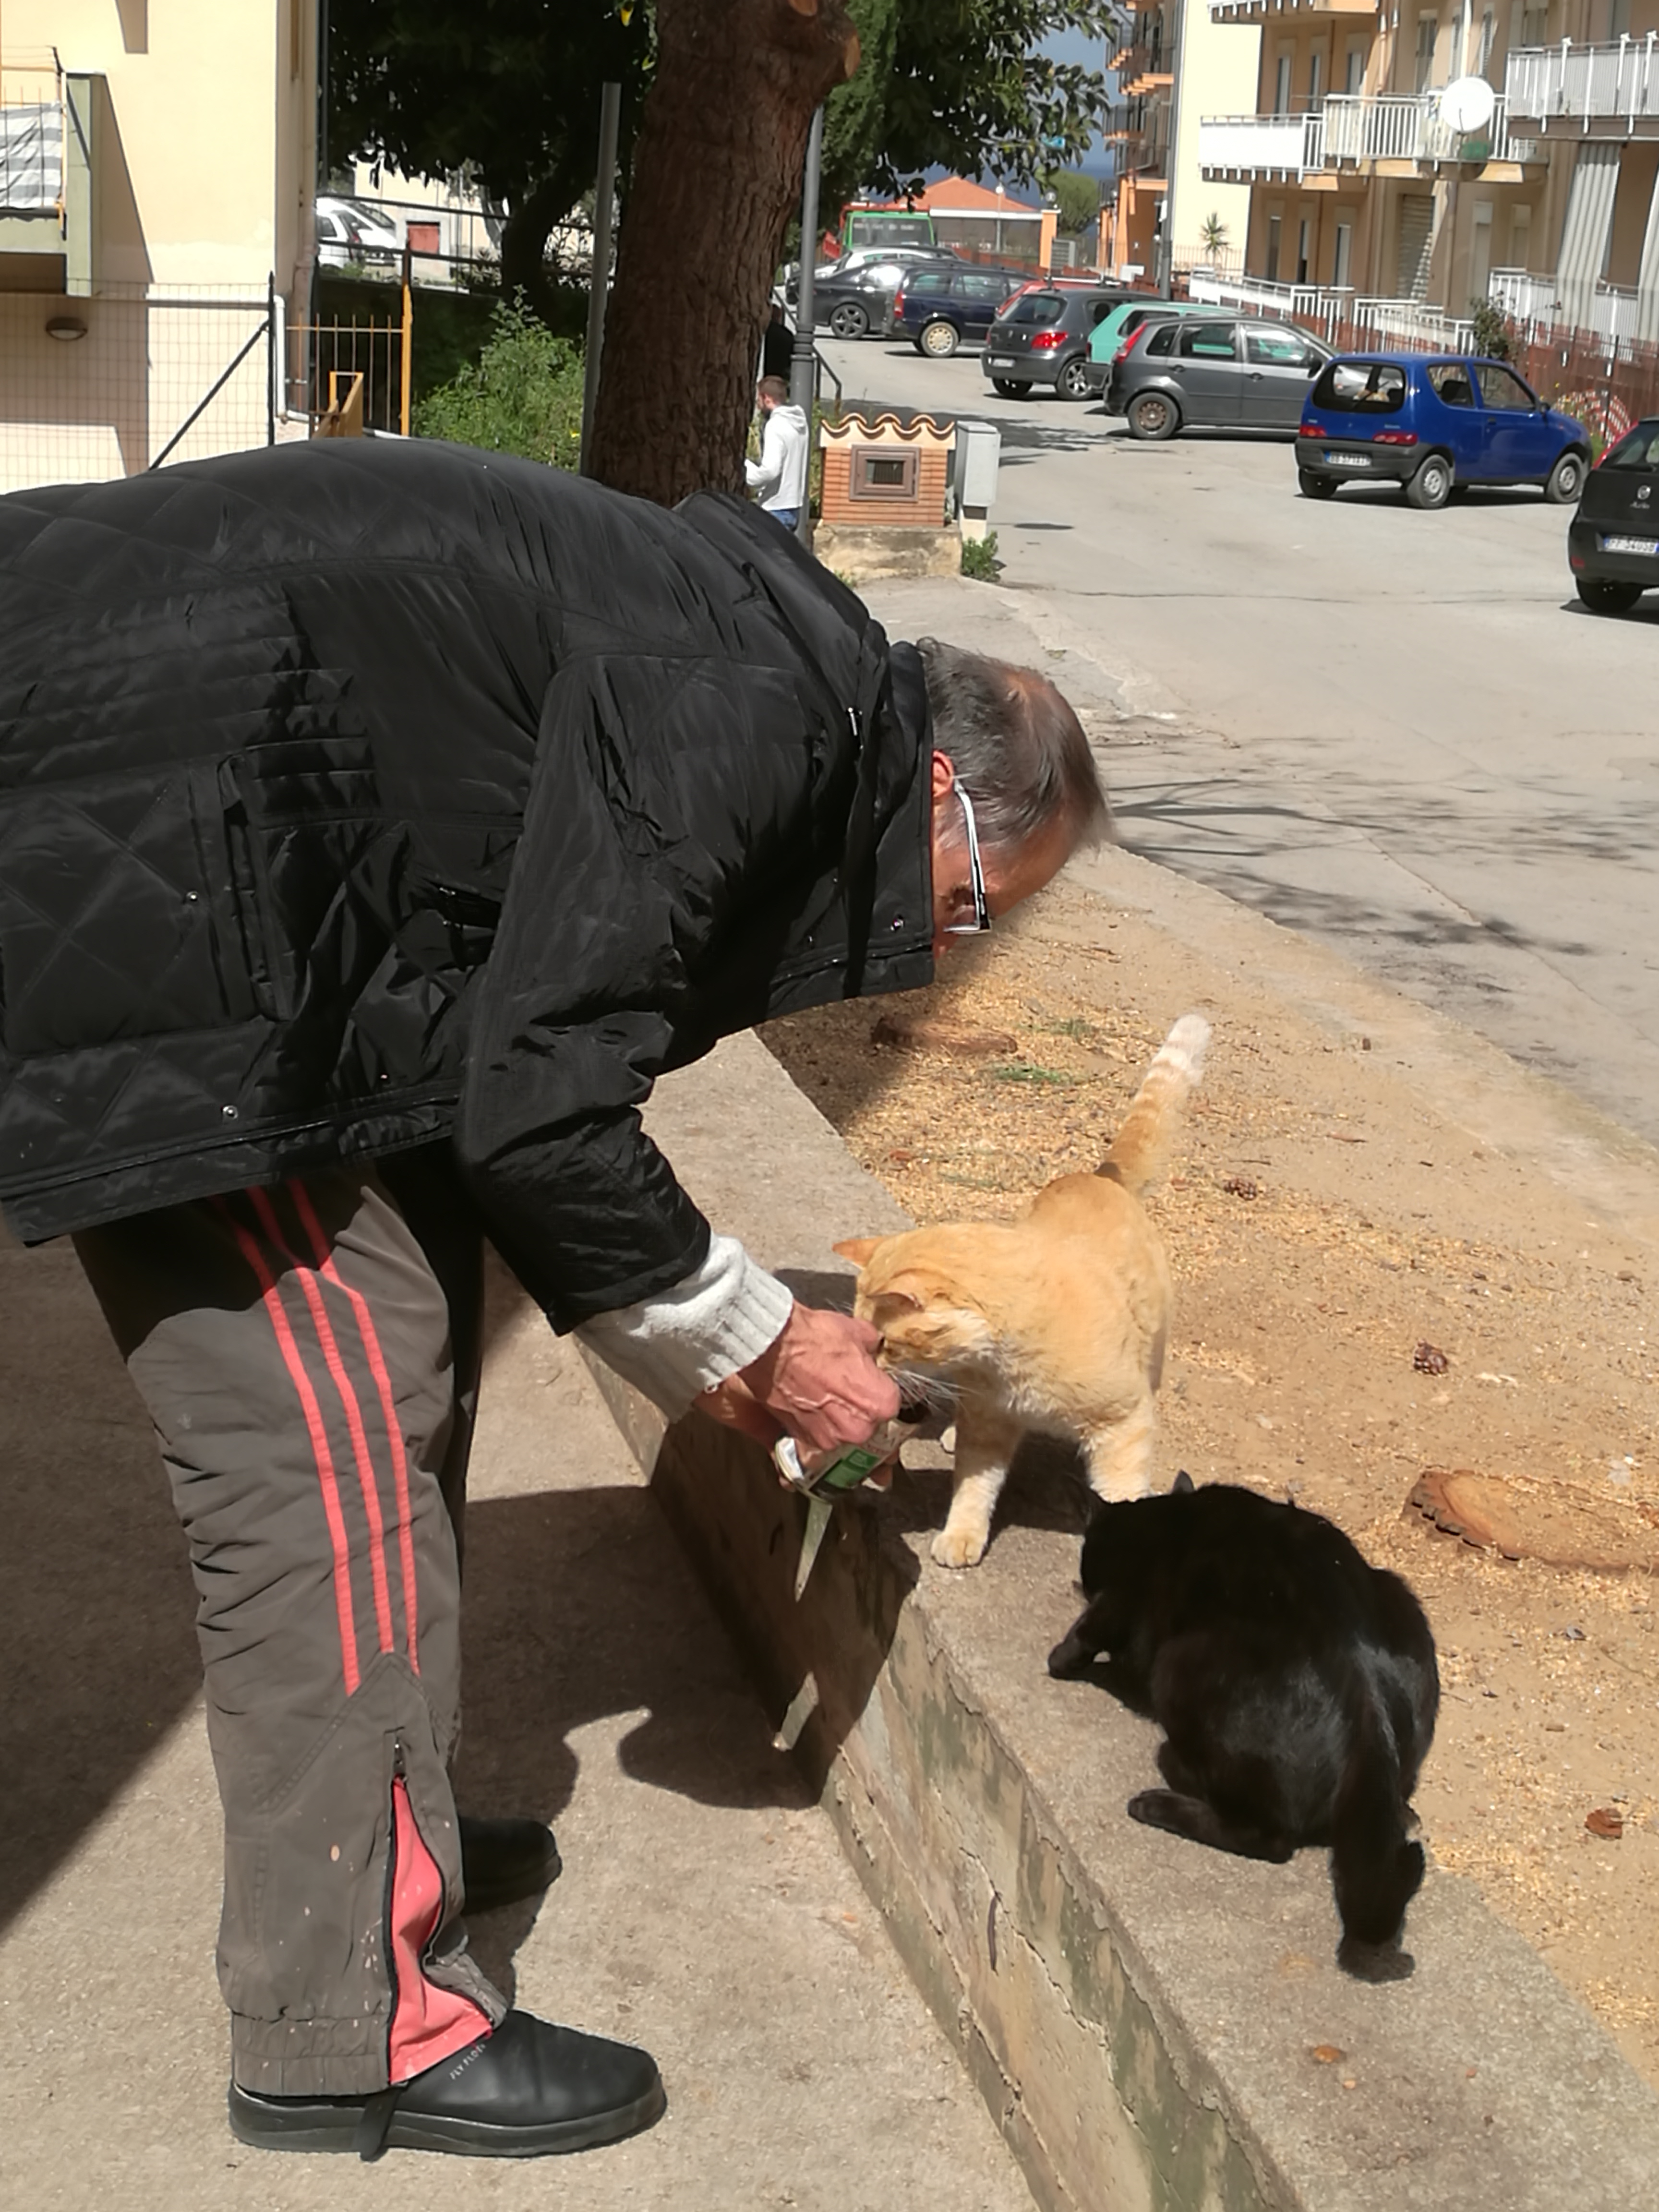 Salvatore feeding two strays in Palermo